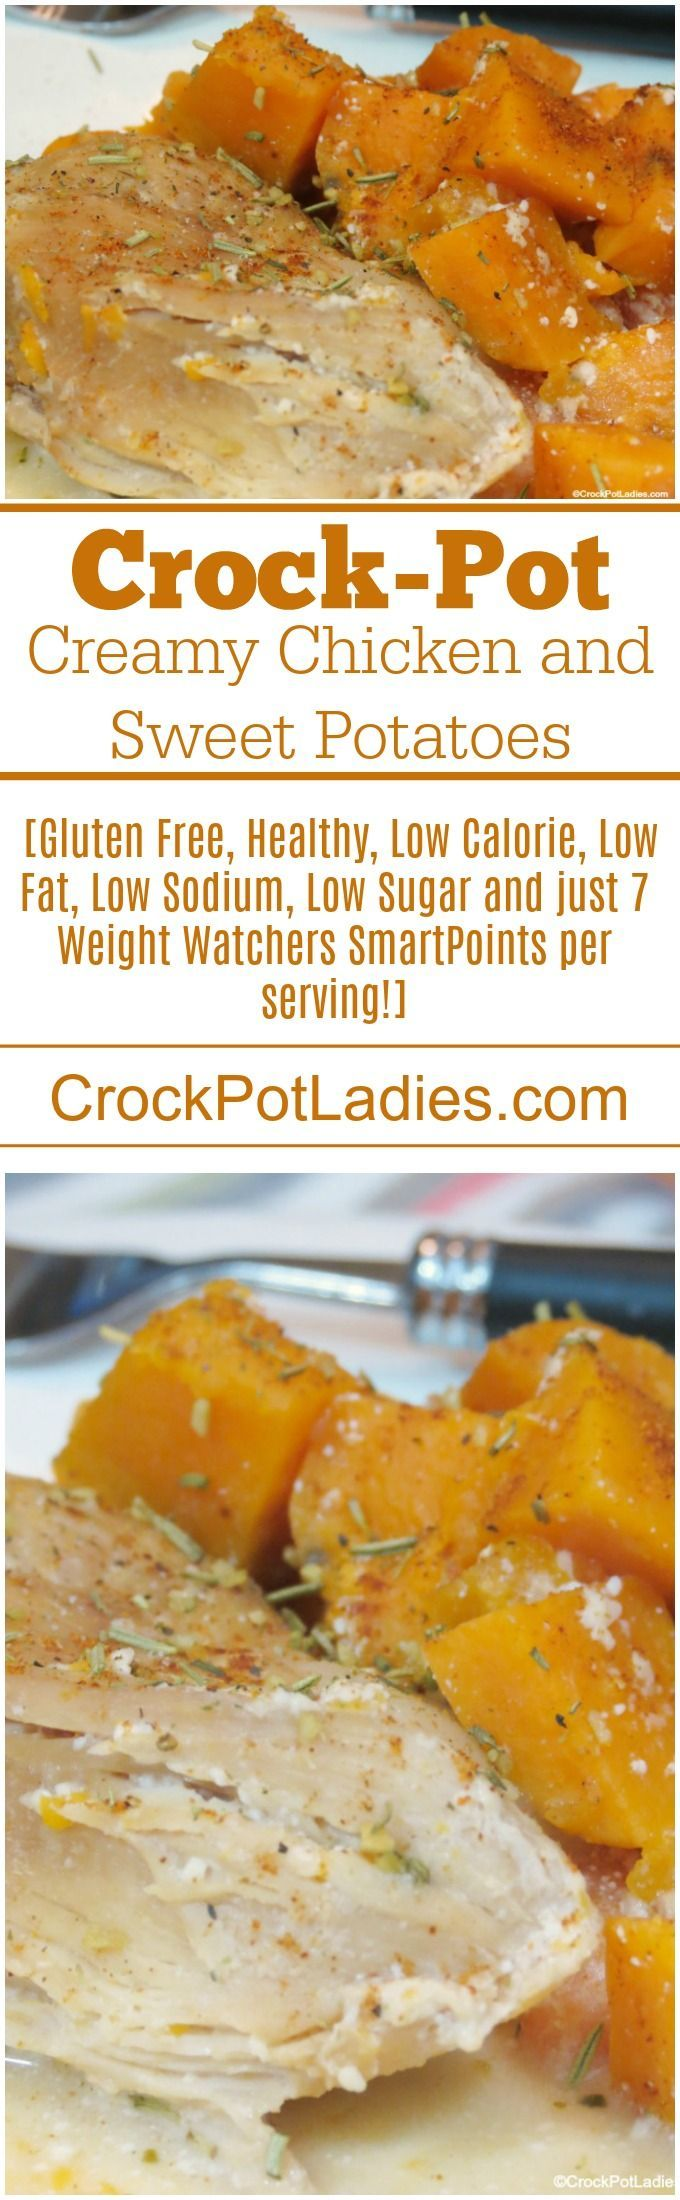 Crock-Pot Creamy Chicken and Sweet Potatoes - Sweet potatoes, boneless skinless chicken breasts, maple syrup and chive and onion flavored cream cheese combine together in the slow cooker in this easy one pot meal recipe! Your family will love this simple recipe for dinner any night of the week! [Gluten Free, Healthy, Low Calorie, Low Fat, Low Sodium, Low Sugar, Paleo and just 7 Weight Watchers SmartPoints per serving!] #CrockPot #SlowCooker #Recipes #HealthyRecipes #WeightWatchers